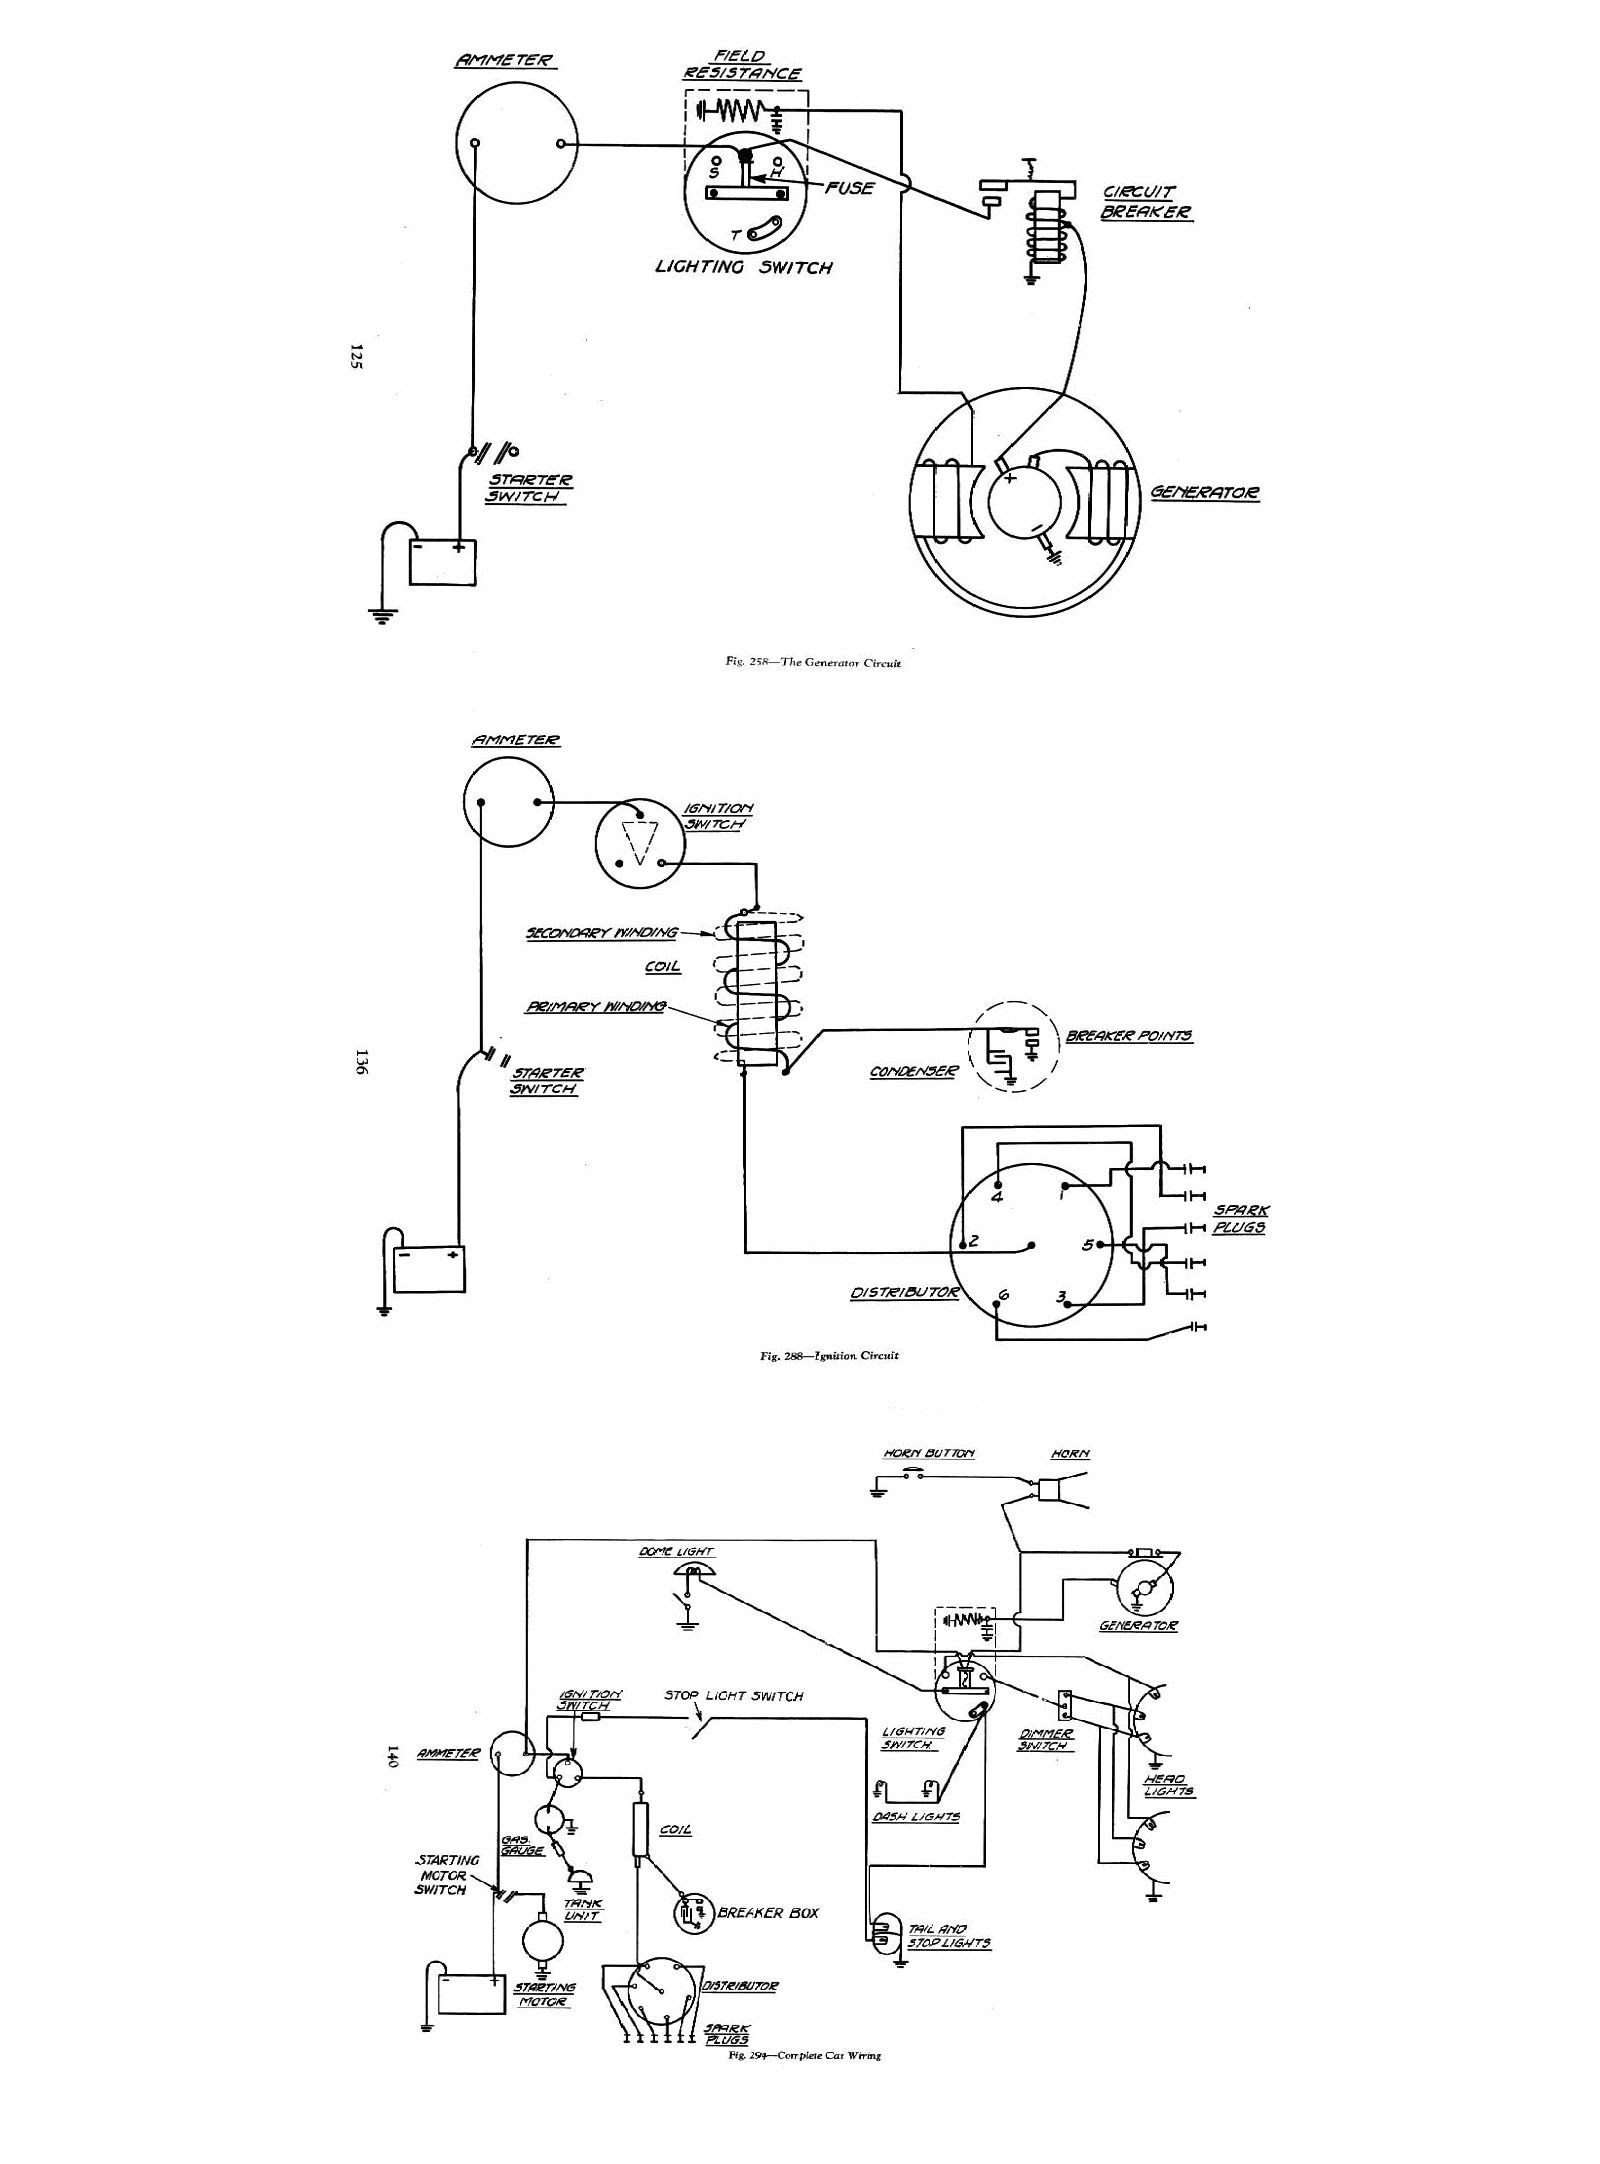 115v Breaker Wiring Diagram Free Picture Schematic